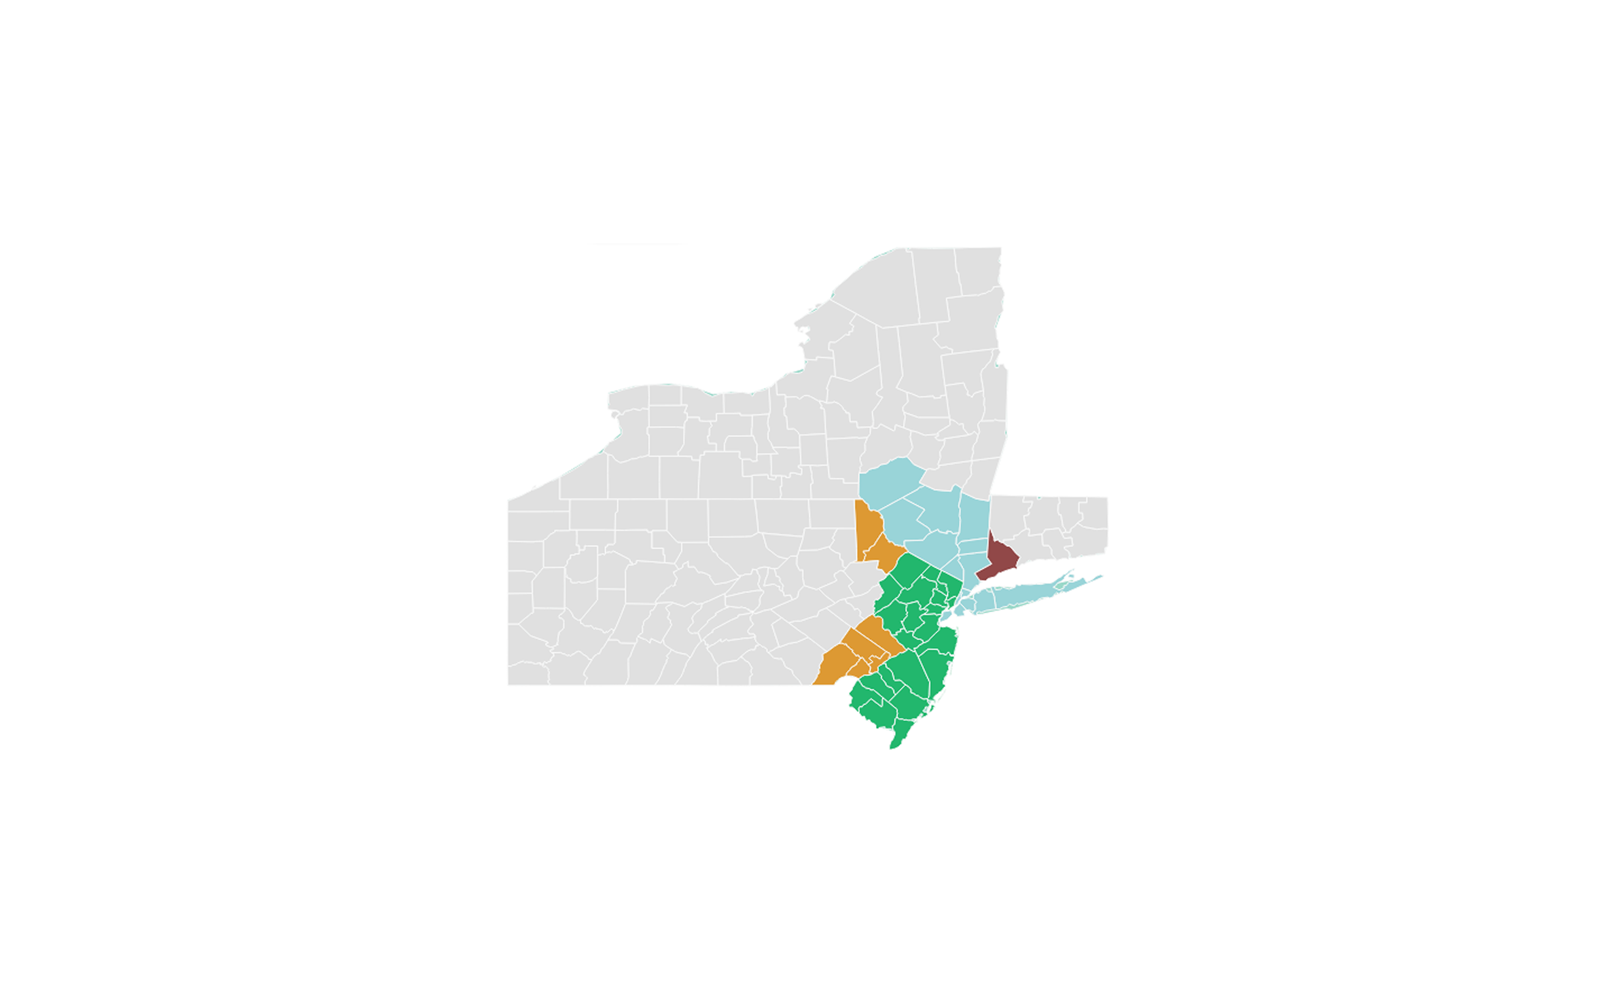 Metropolitan Machinery Coverage Area in New York, New Jersey, Connecticut, Pennsylvania, and Delaware